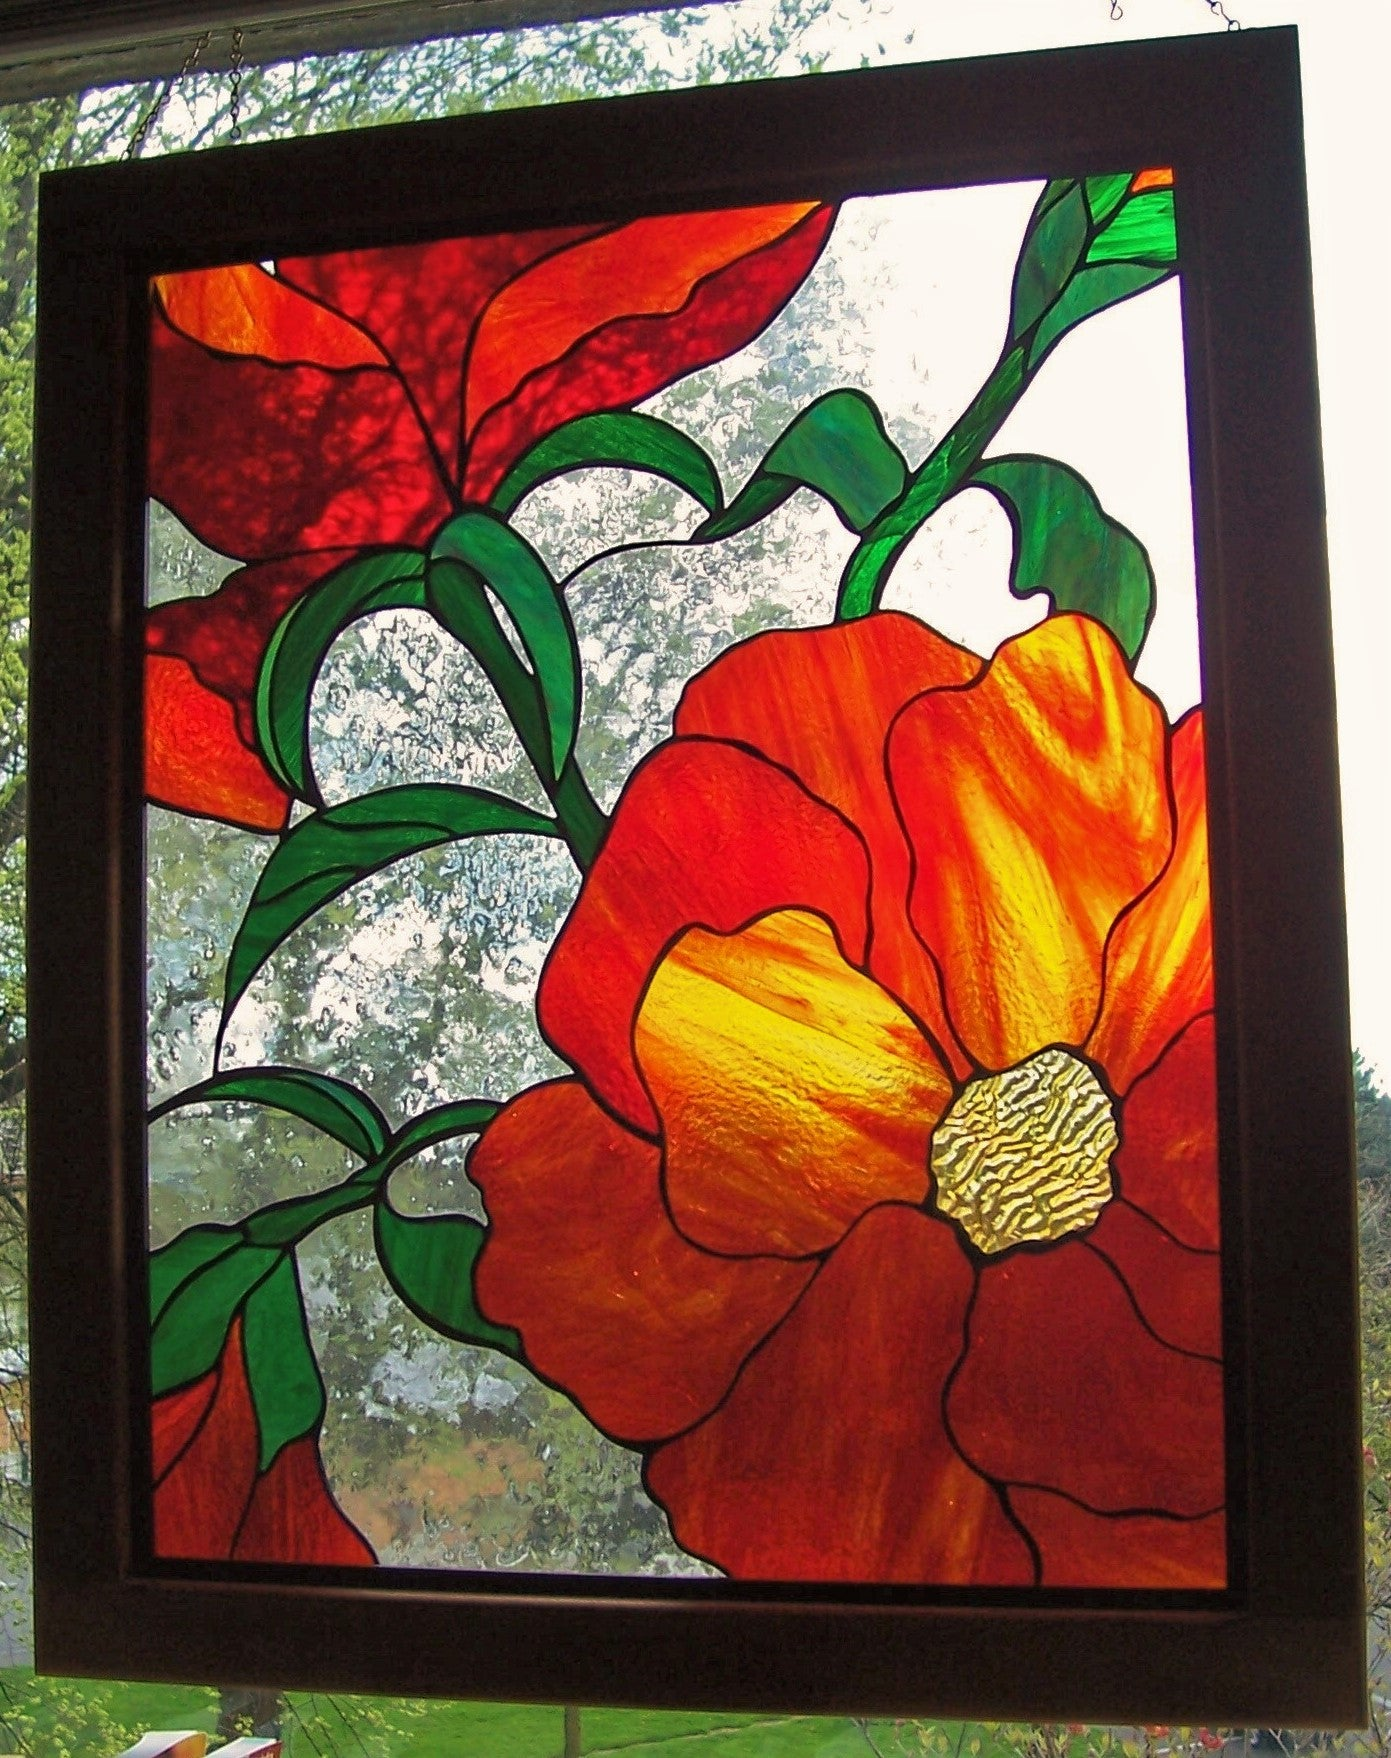 """Poppies"", stained glass hanging panel, 27.75"" x 33.75"", framed"